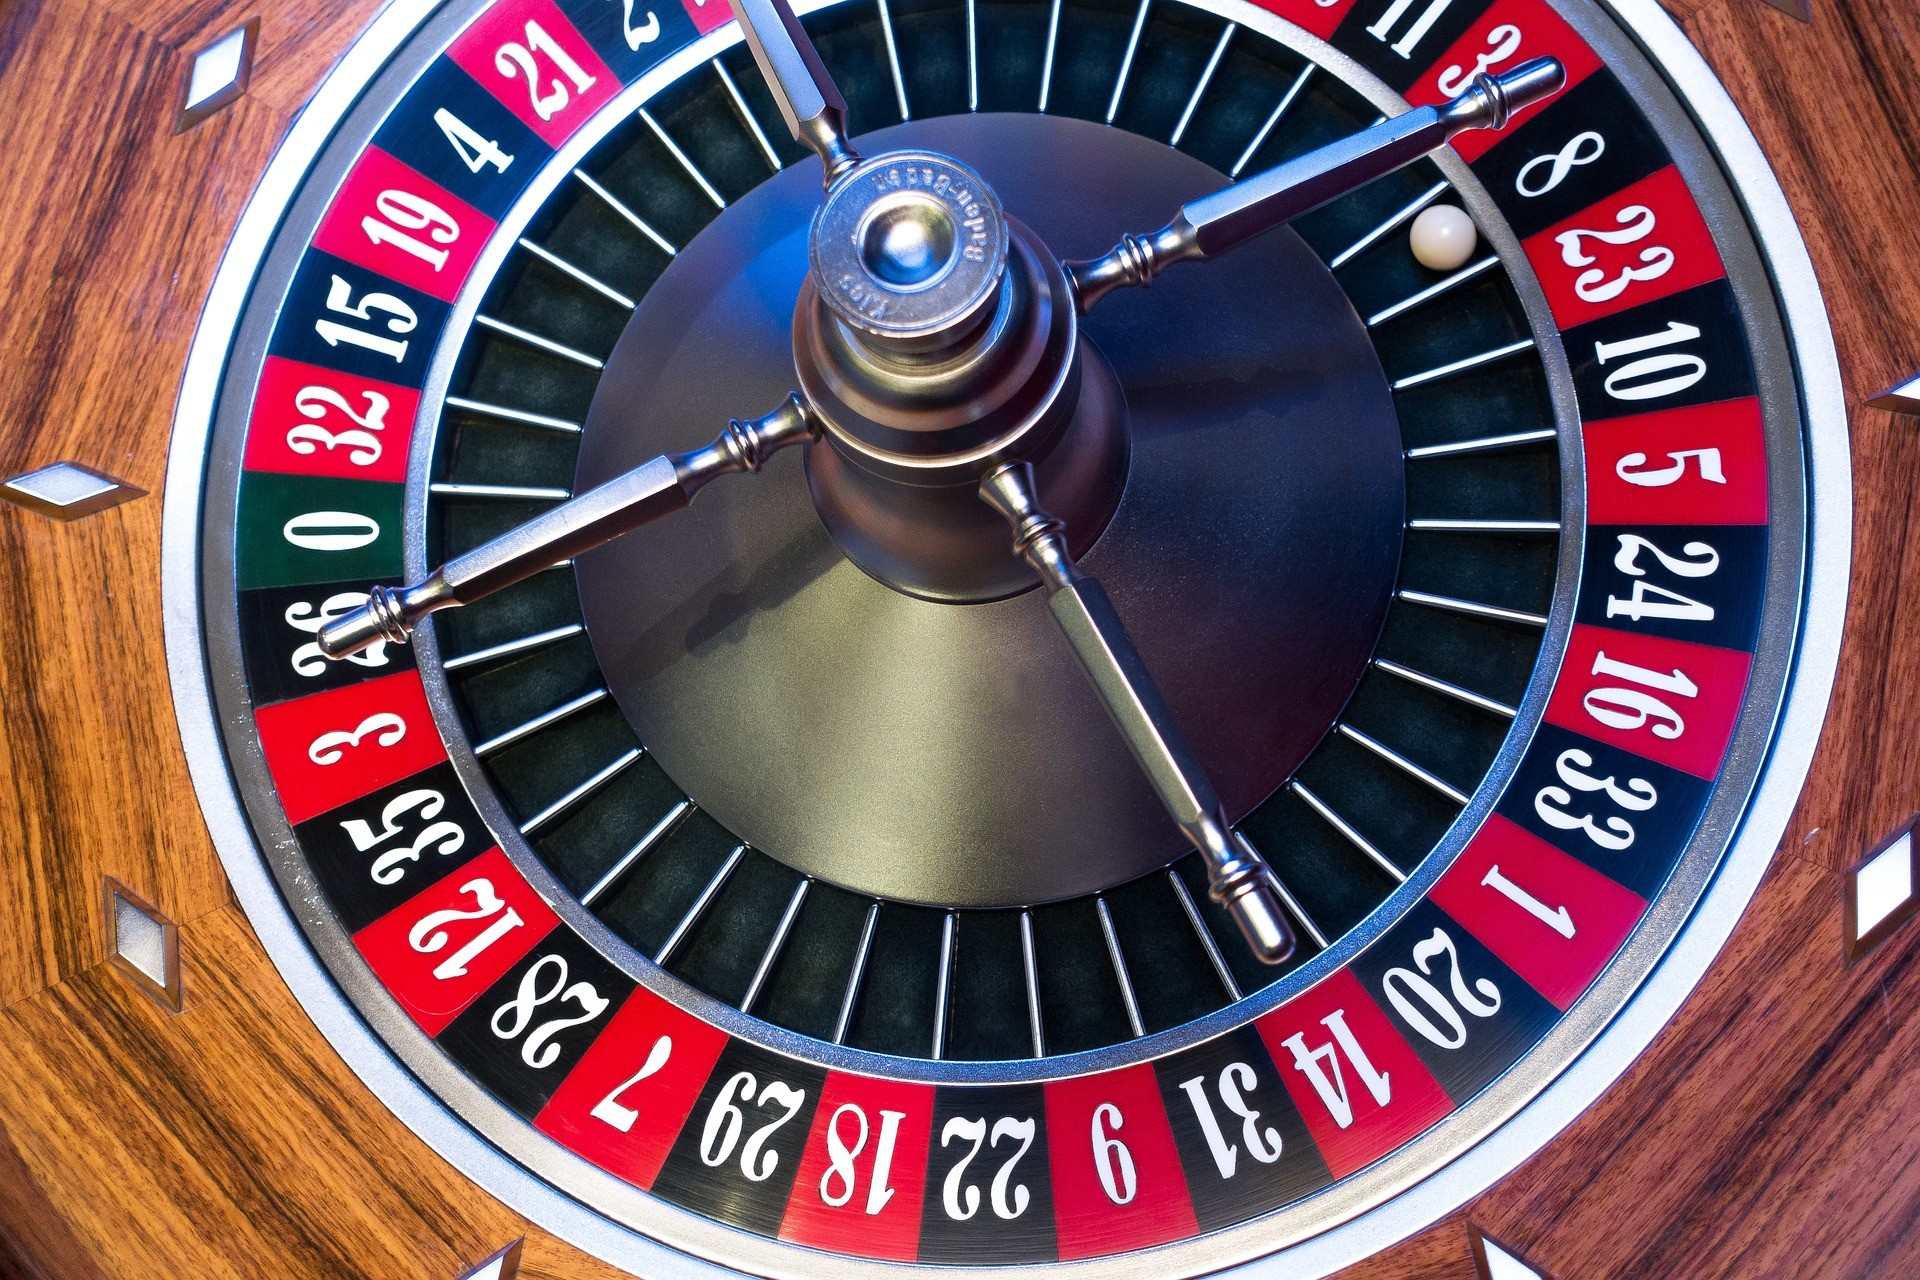 The Recent Changes in the World of Online Gambling